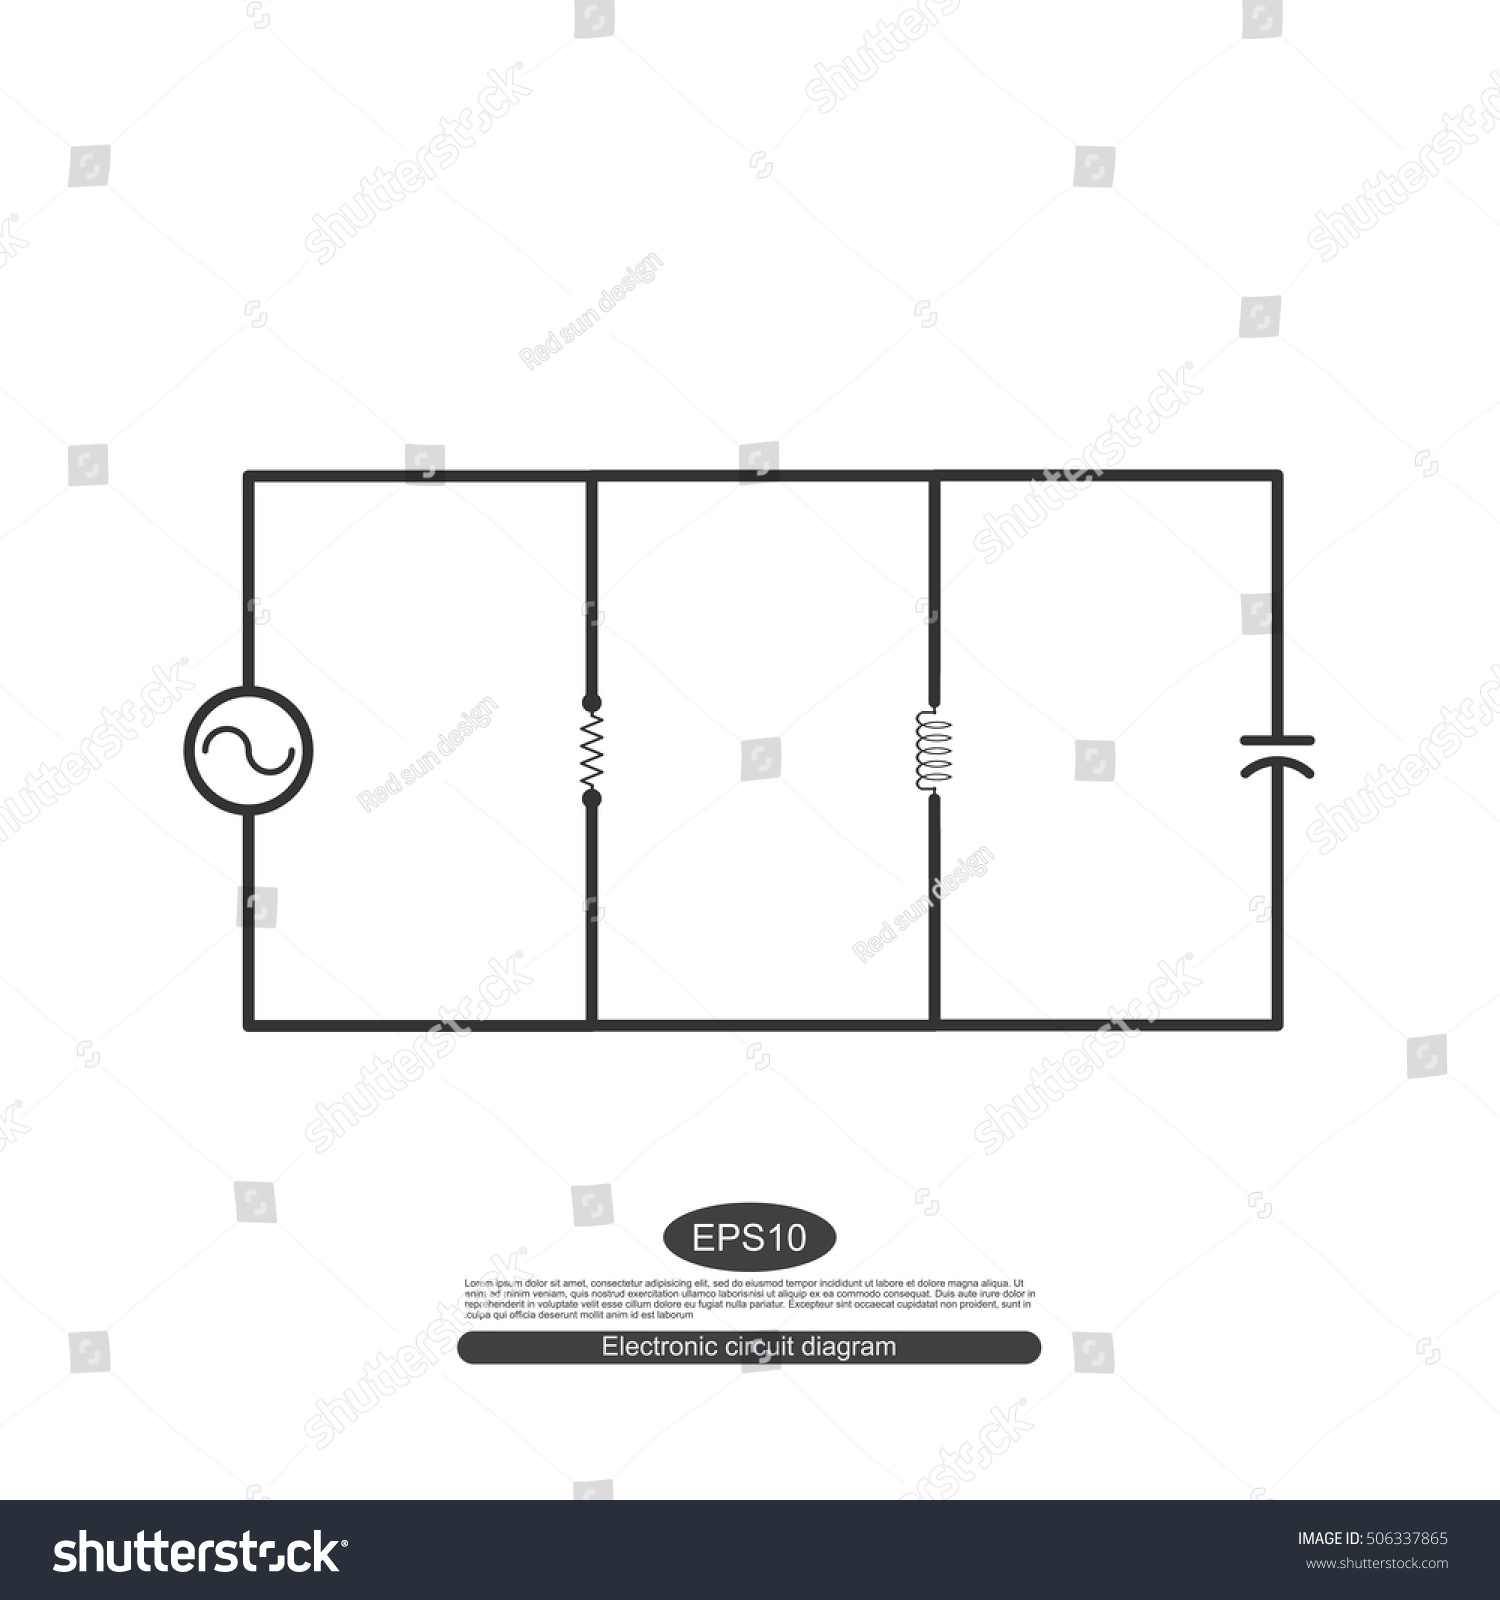 Electronic Symbols Learning Basic Electrical Circuits Stock Vector Electricity And For The Parallel Circuit Consists Of A Source